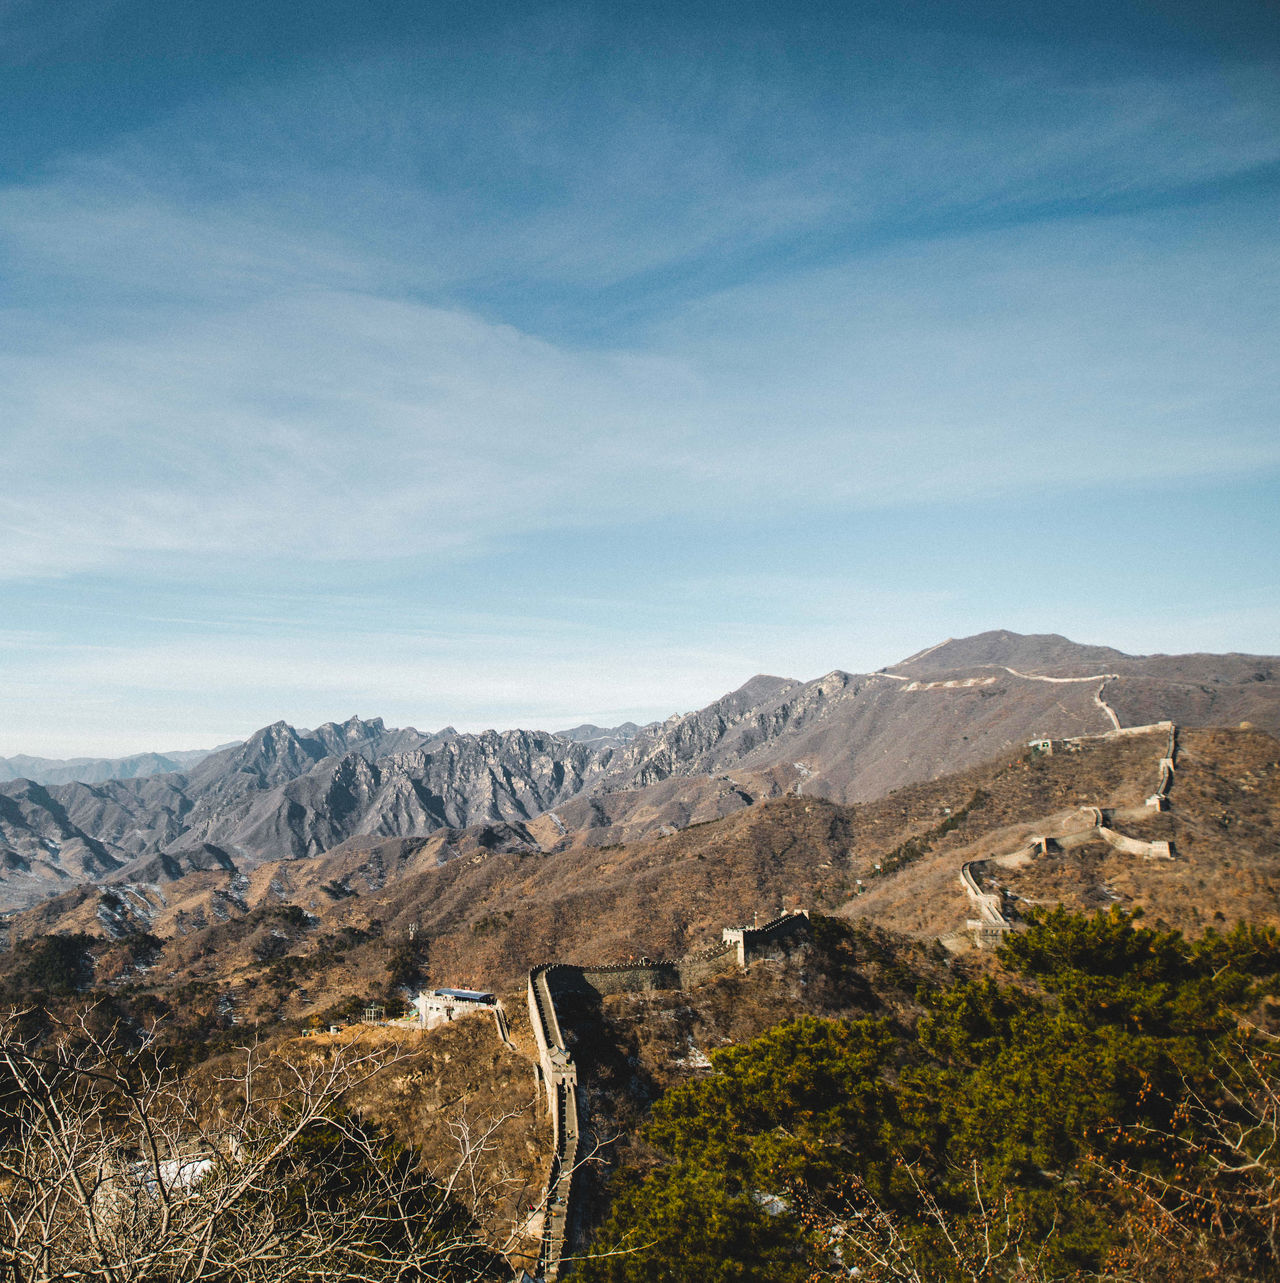 Crack the Earth Mountain Sky No People Mountain Range Outdoors Landscape ASIA Wanderlust Showcase: March Travel Traveling Day Great Wall Of China China